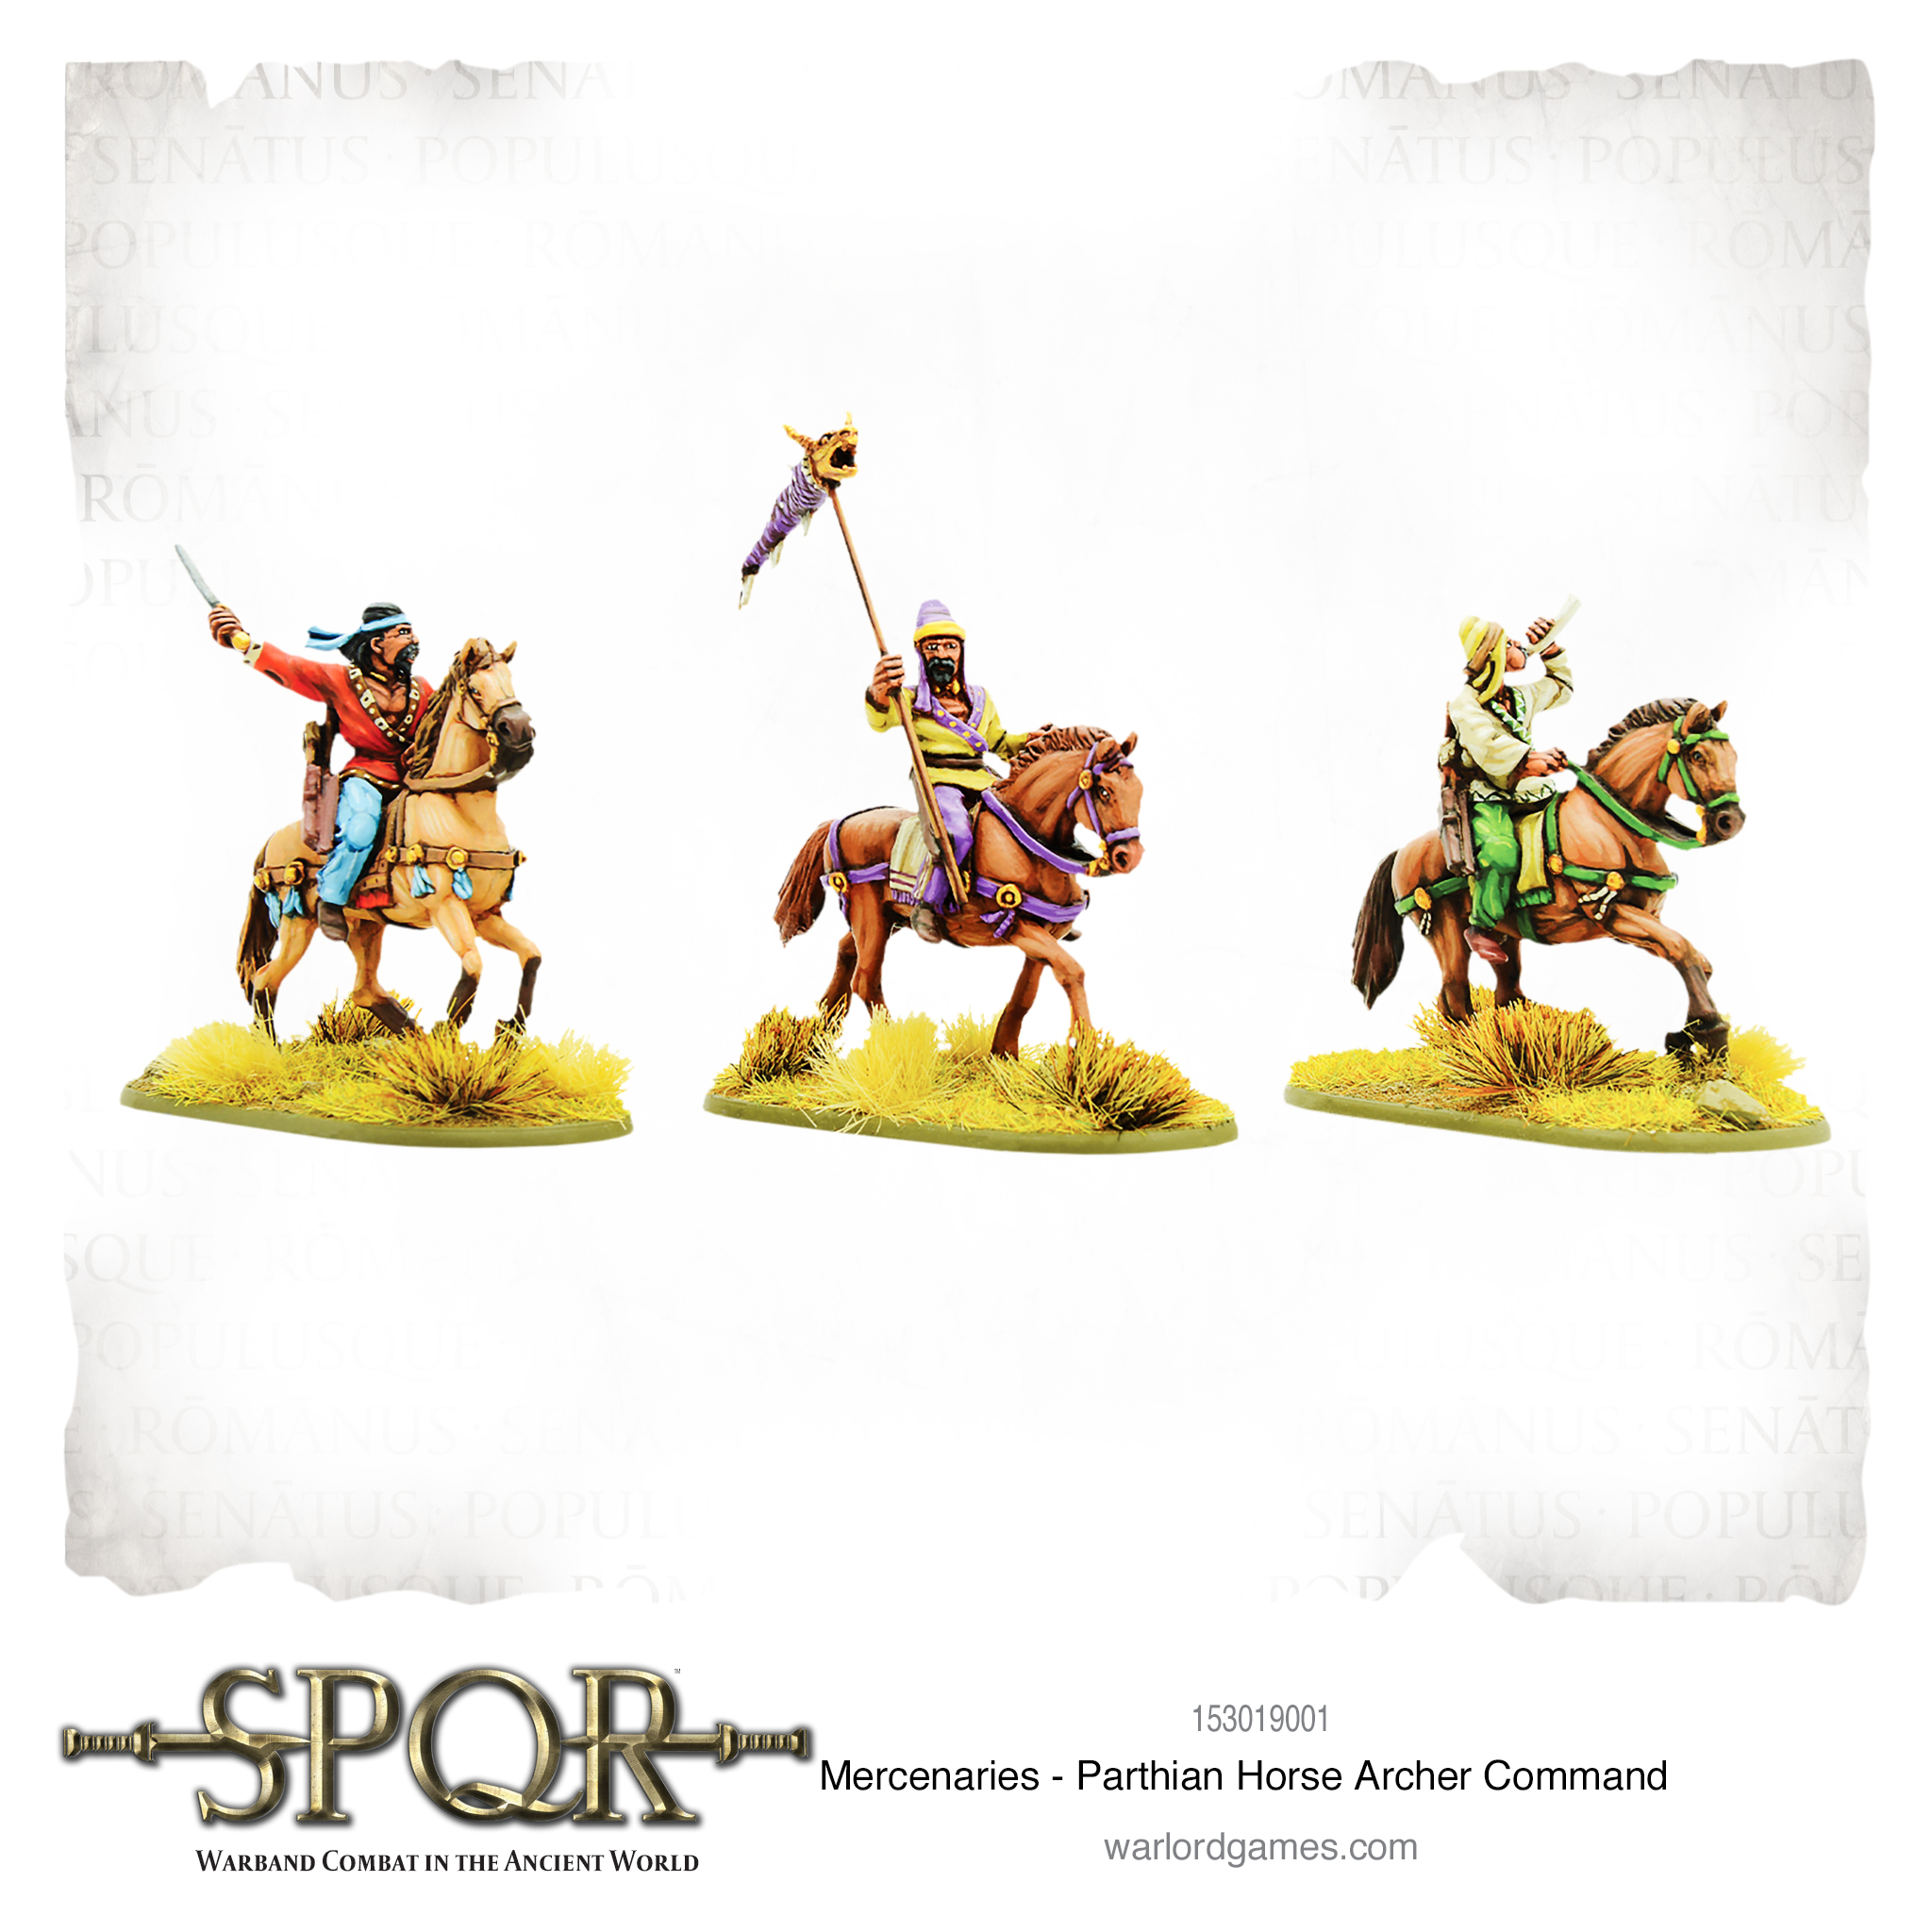 SPQR: Mercenaries - Parthian Horse Archer command